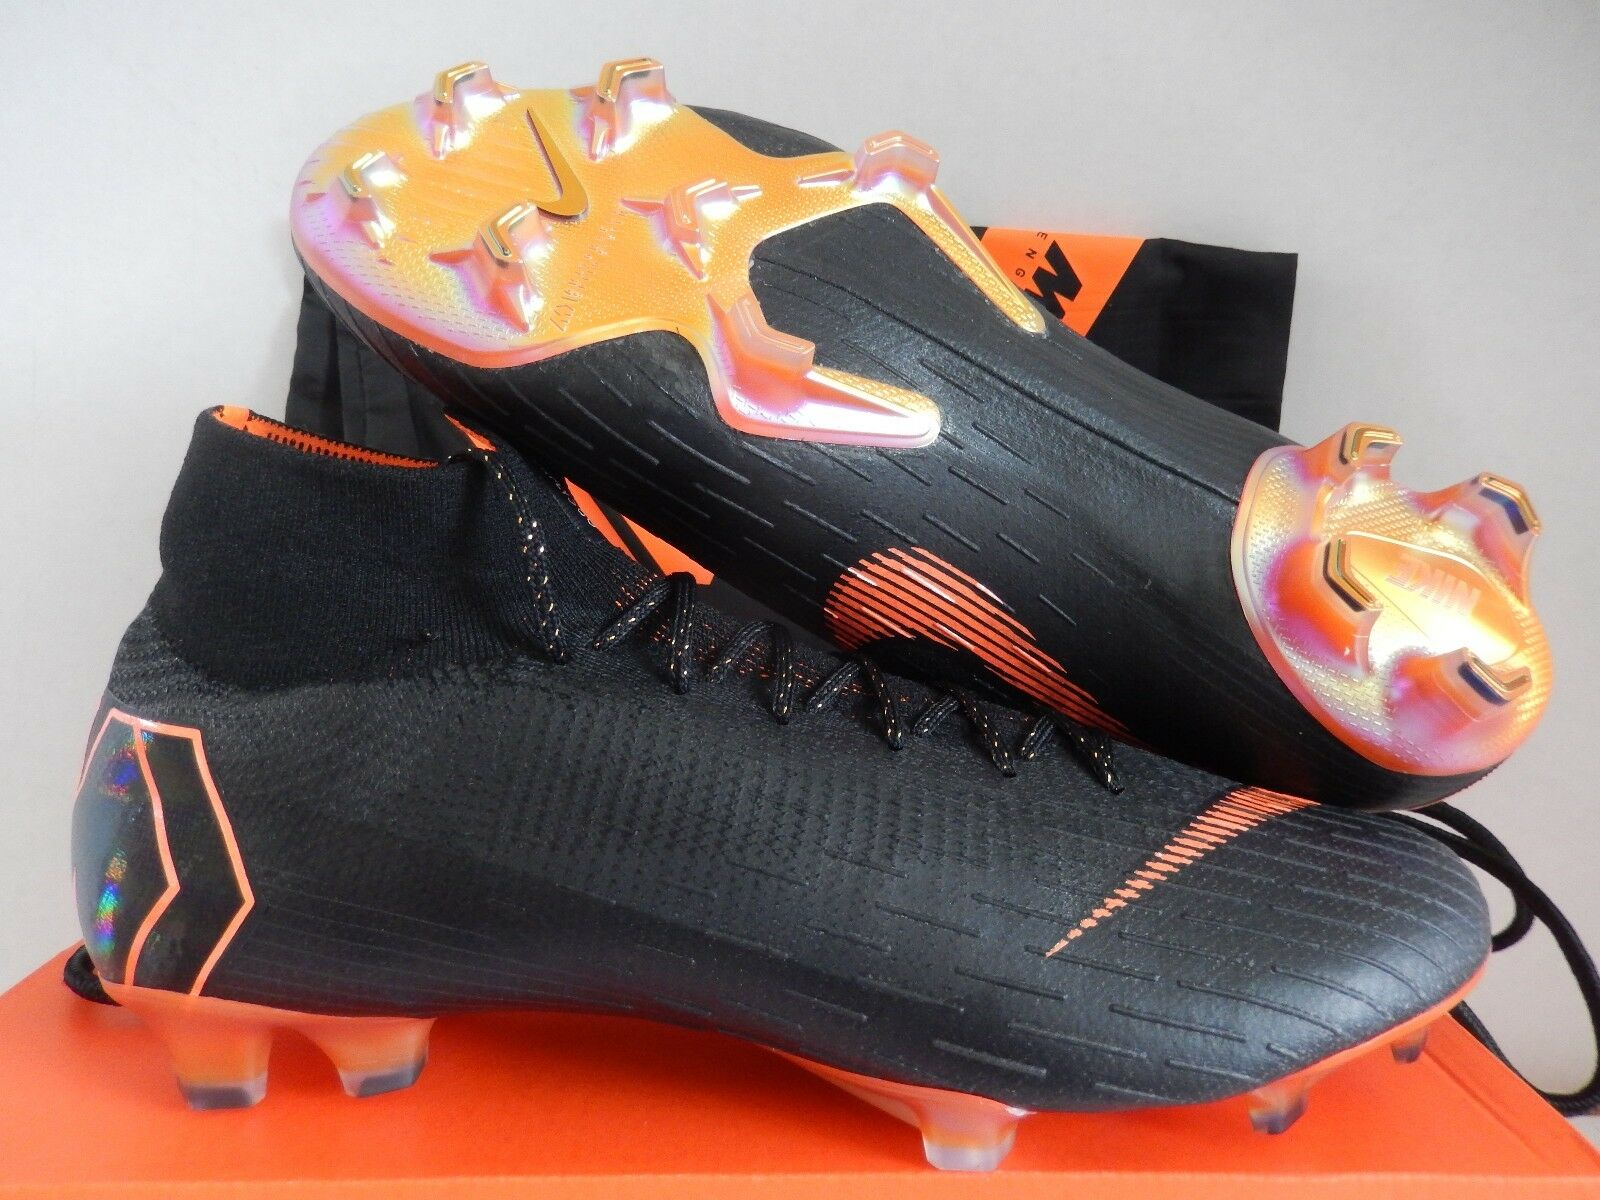 NIKE SUPERFLY 6 ELITE FG 13 Noir -TOTAL ORANGE-blanc SZ 13 FG 002517